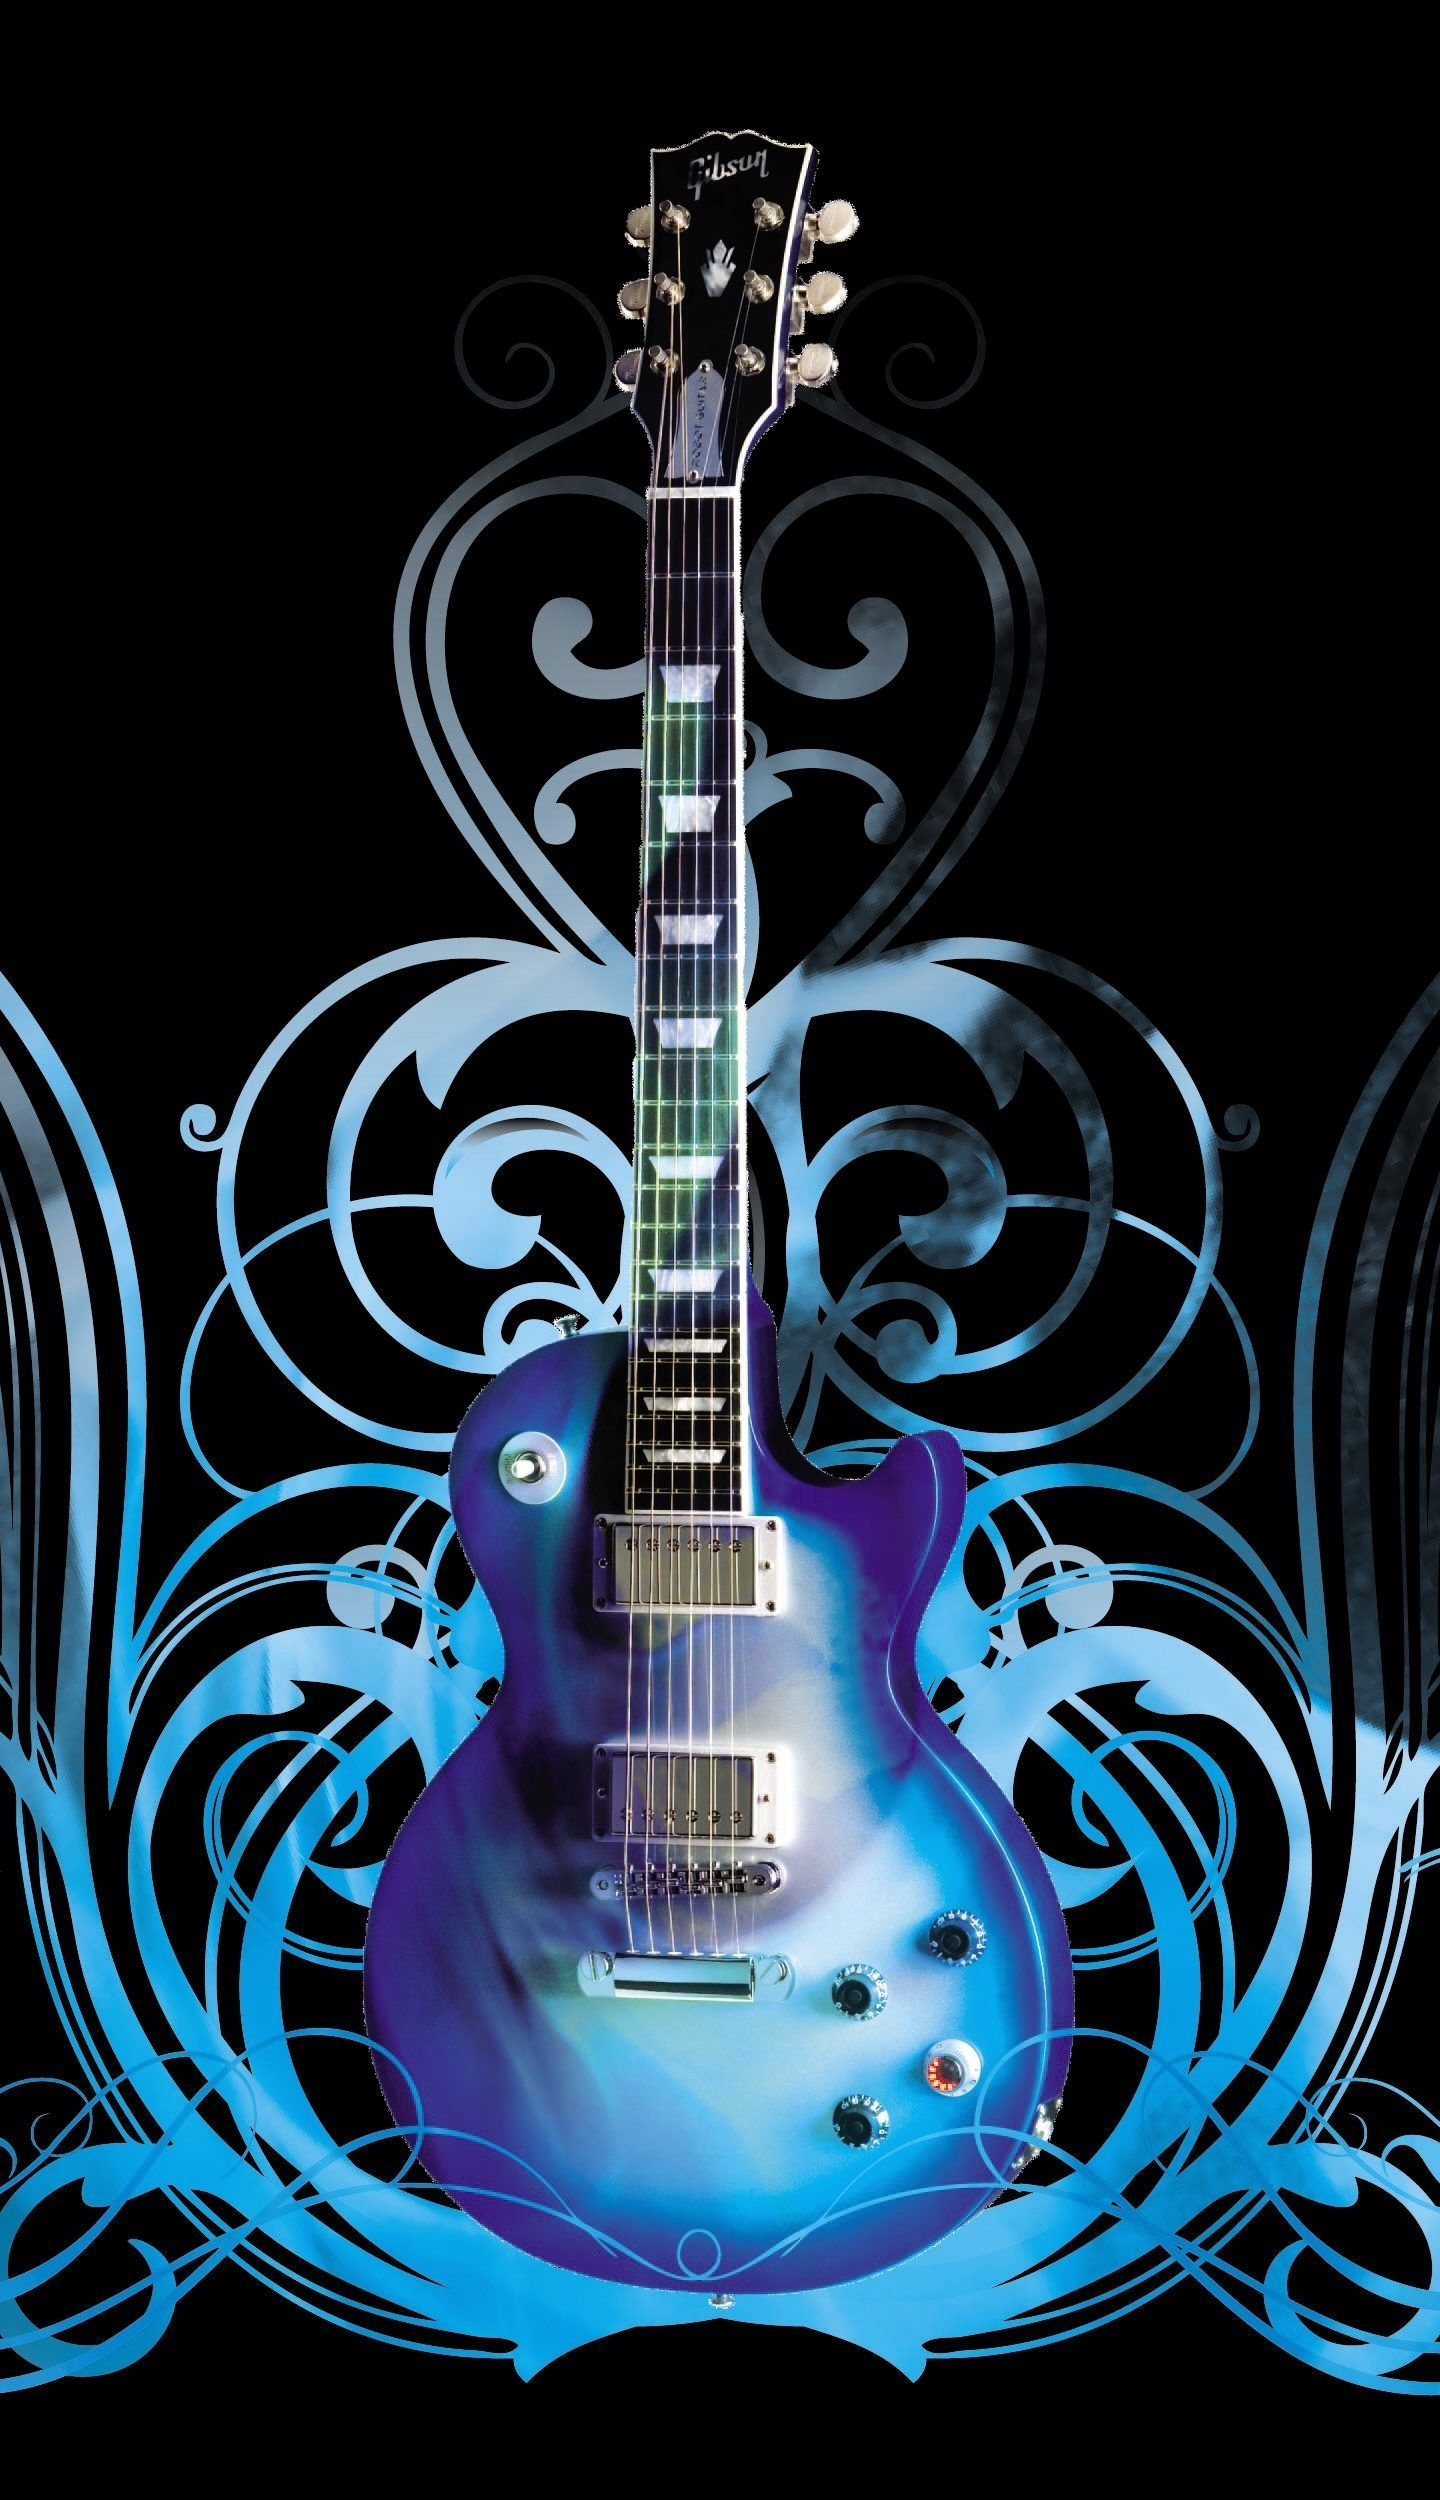 1440x2500 Guitar Art Blue Music 4K Wallpaper - Best Wallpapers